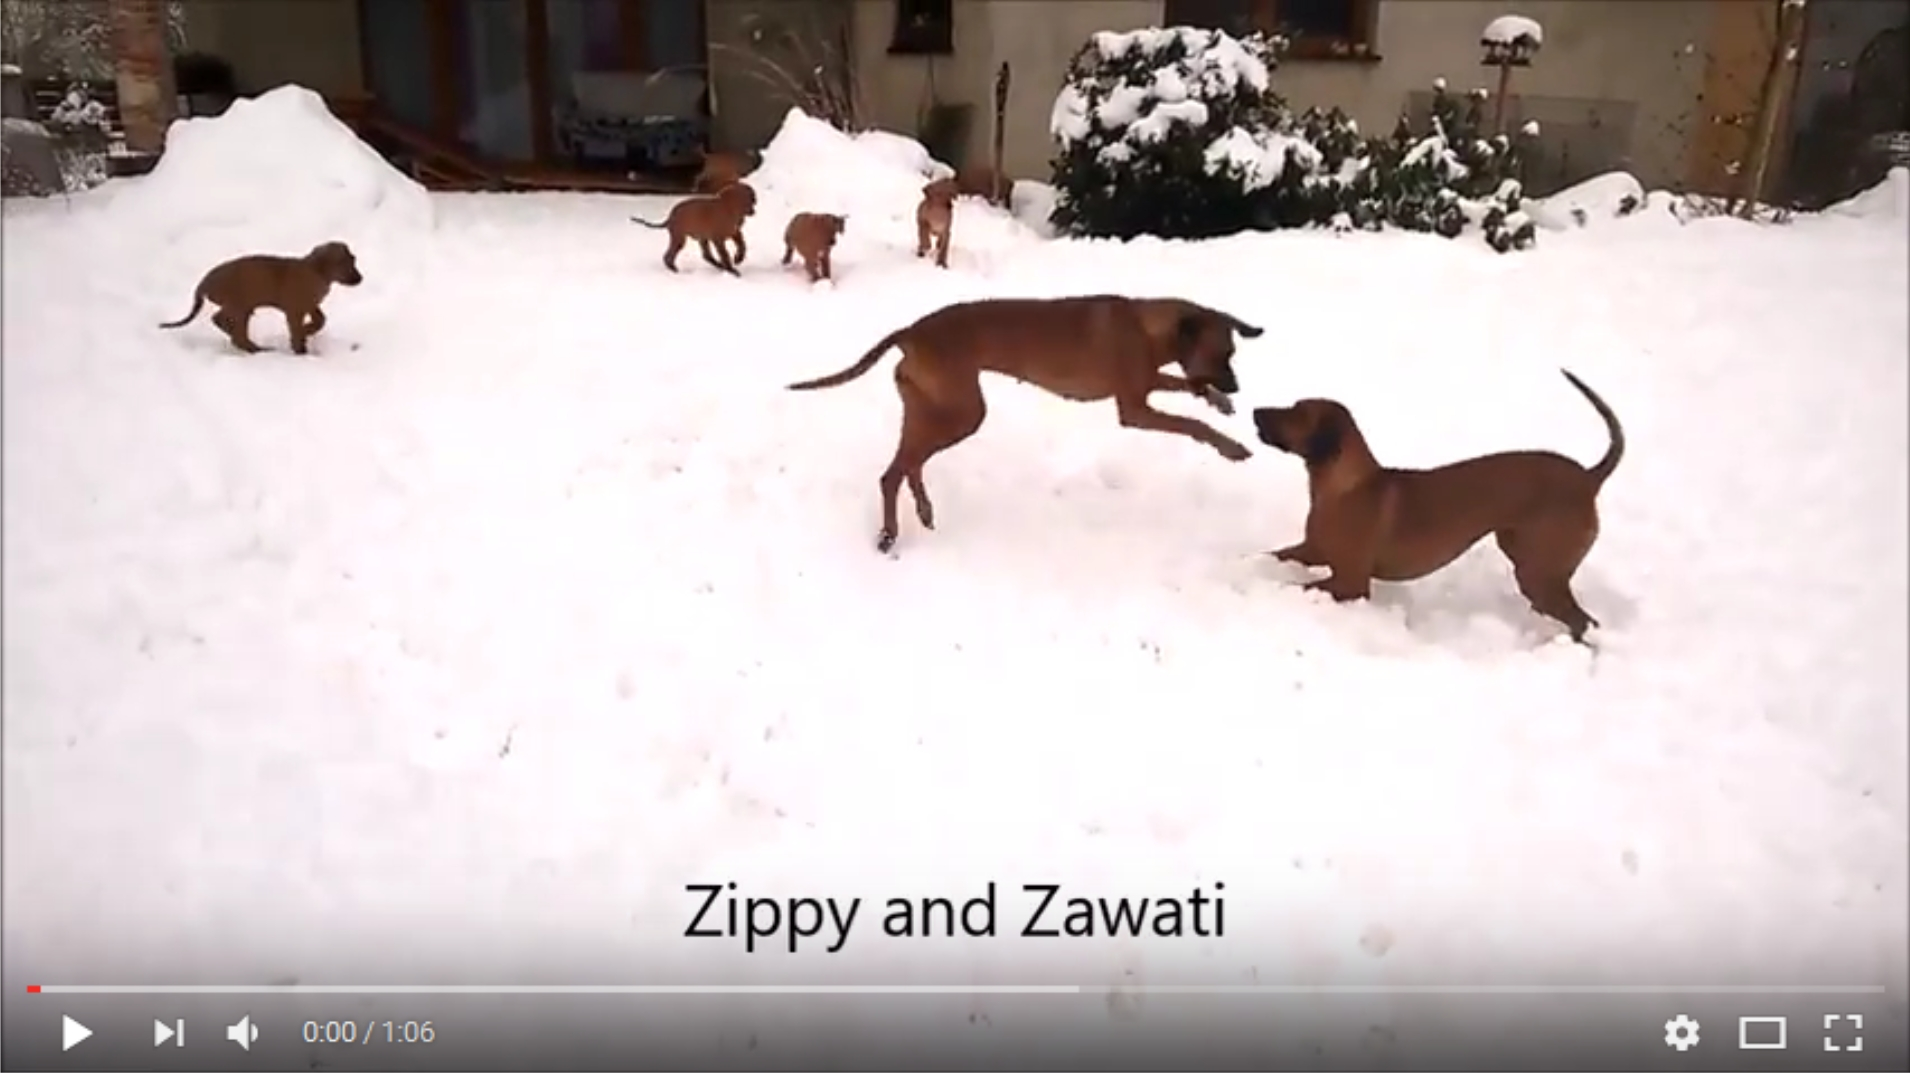 Zippy and Zawati